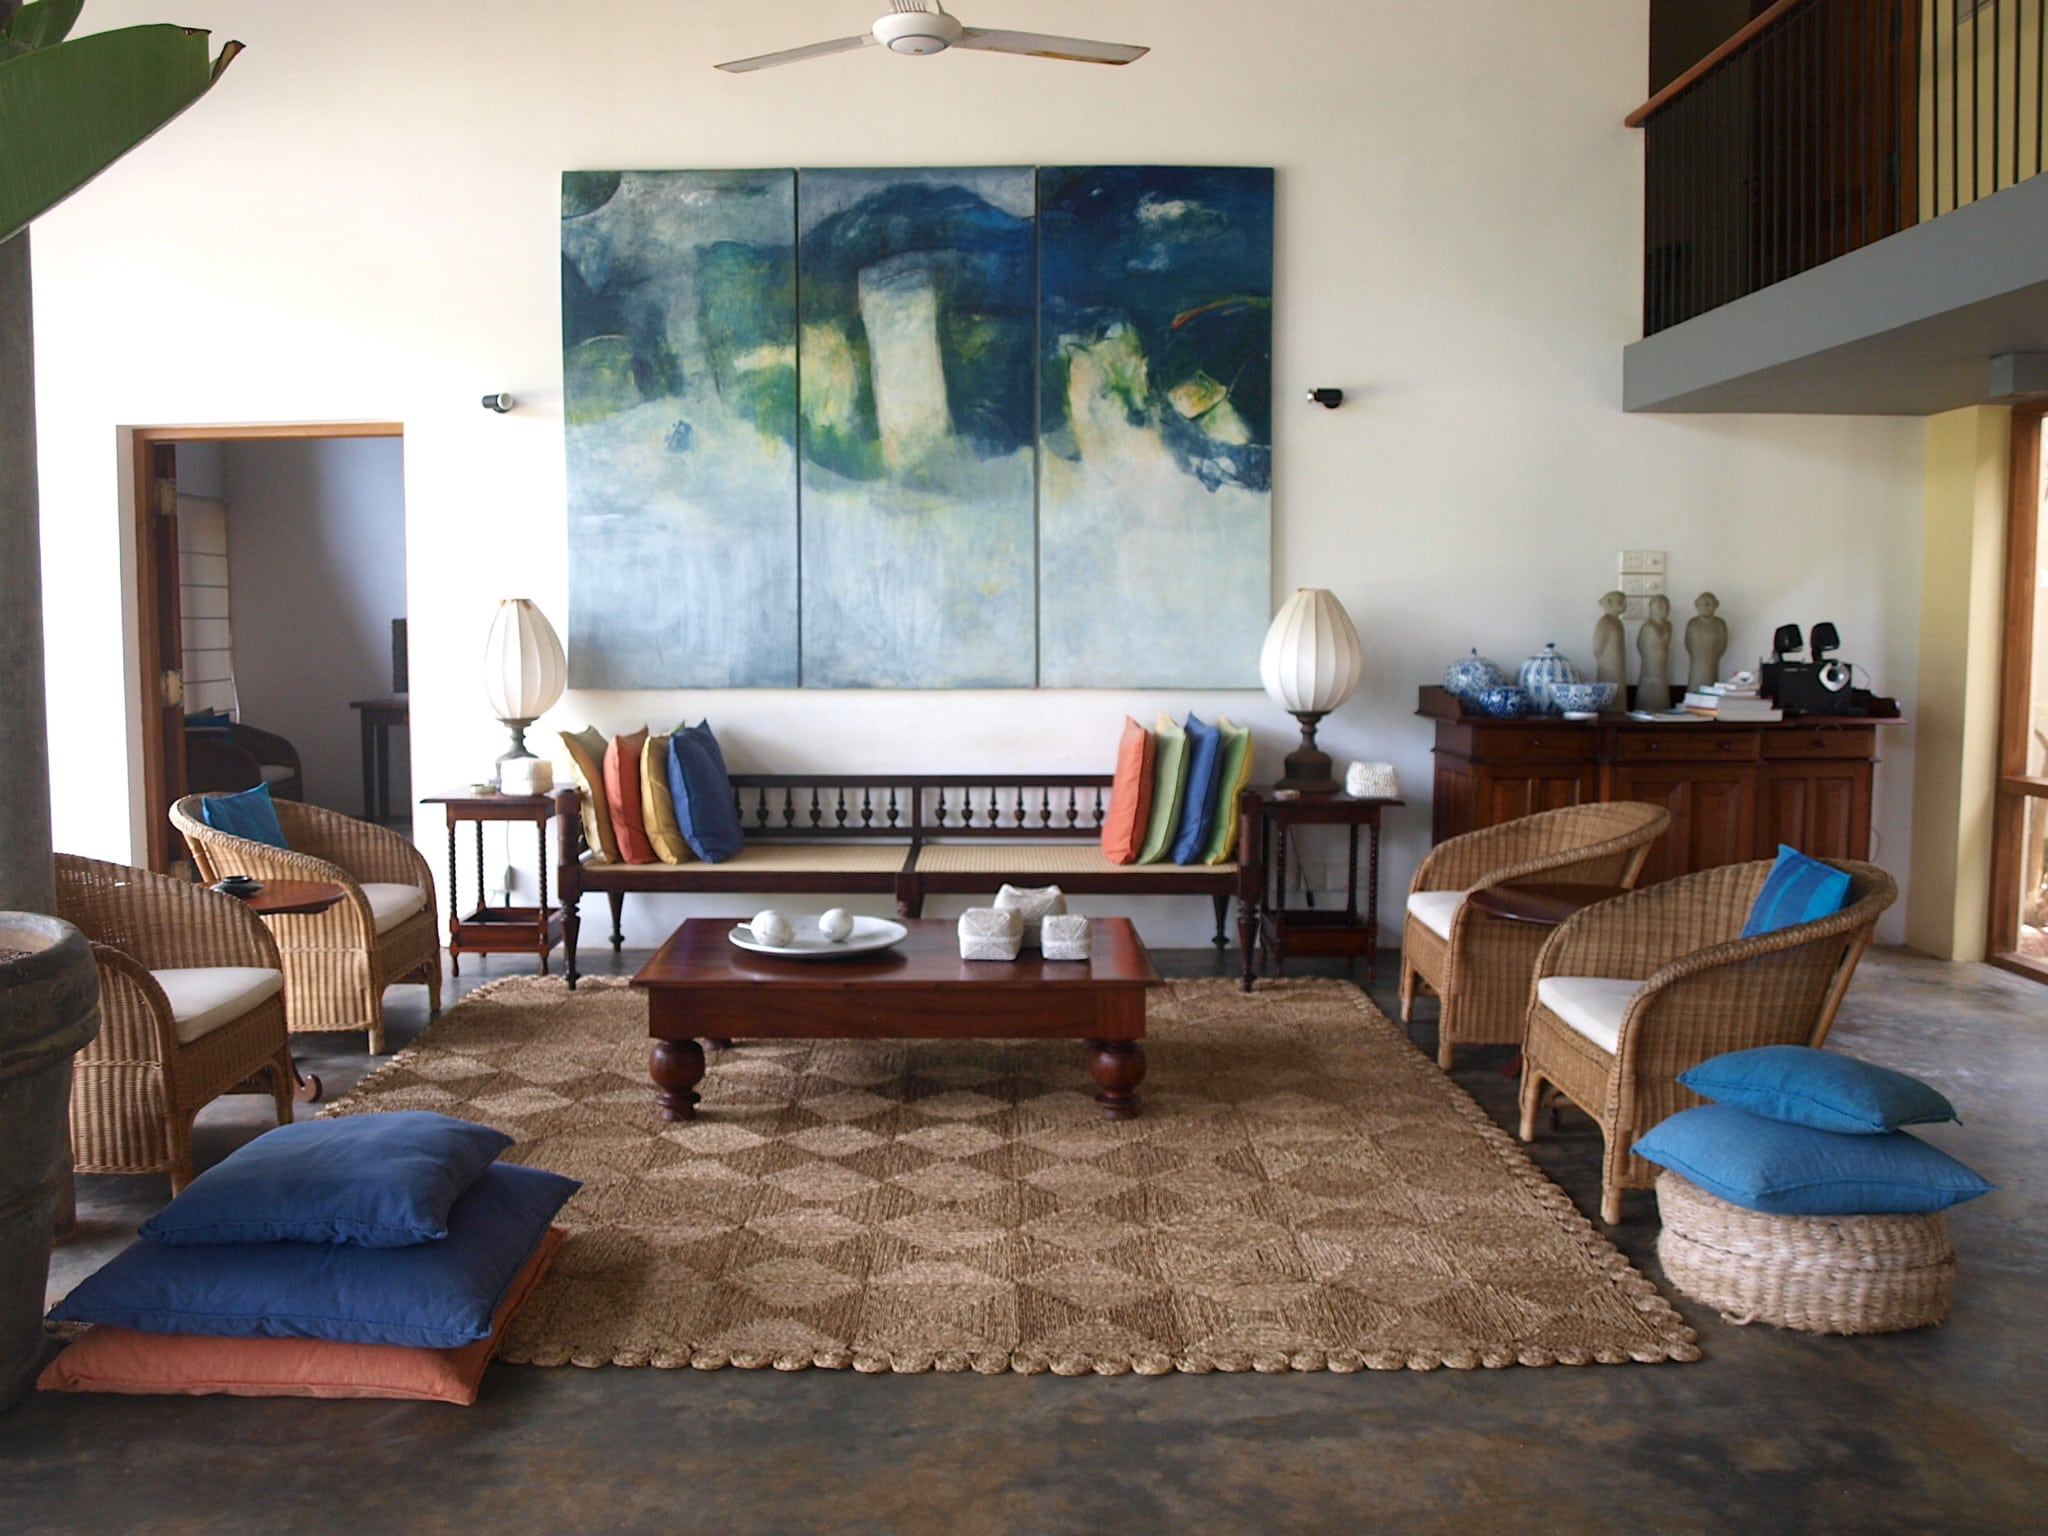 Lounge area in Saffron & Blue luxury beachside villa kosgoda Sri Lanka